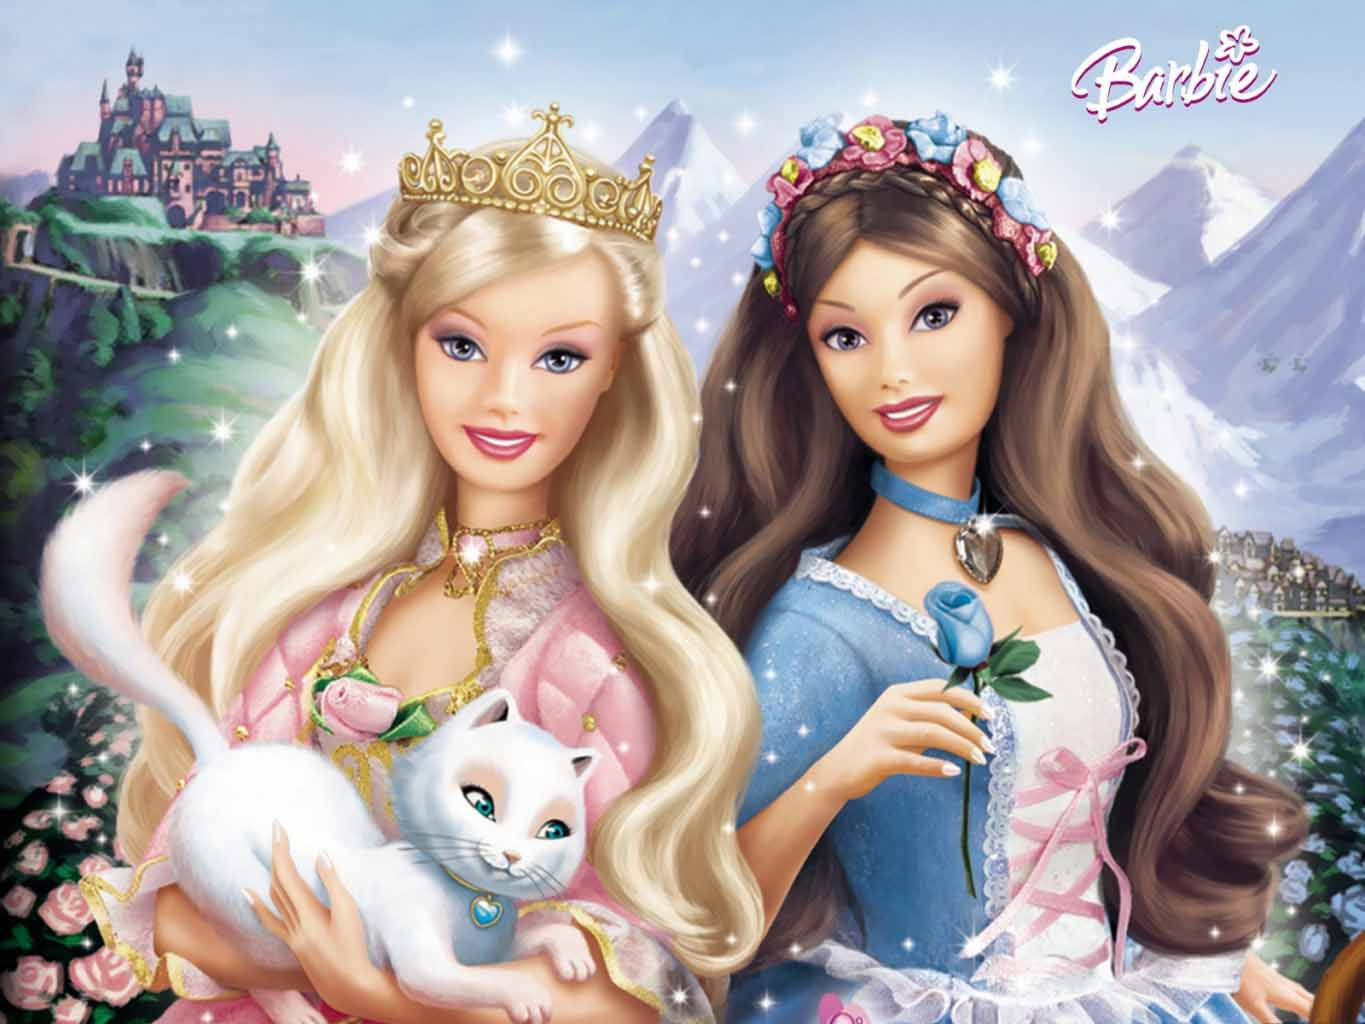 17 Best images about Barbie Movies and Pictures on Pinterest | The